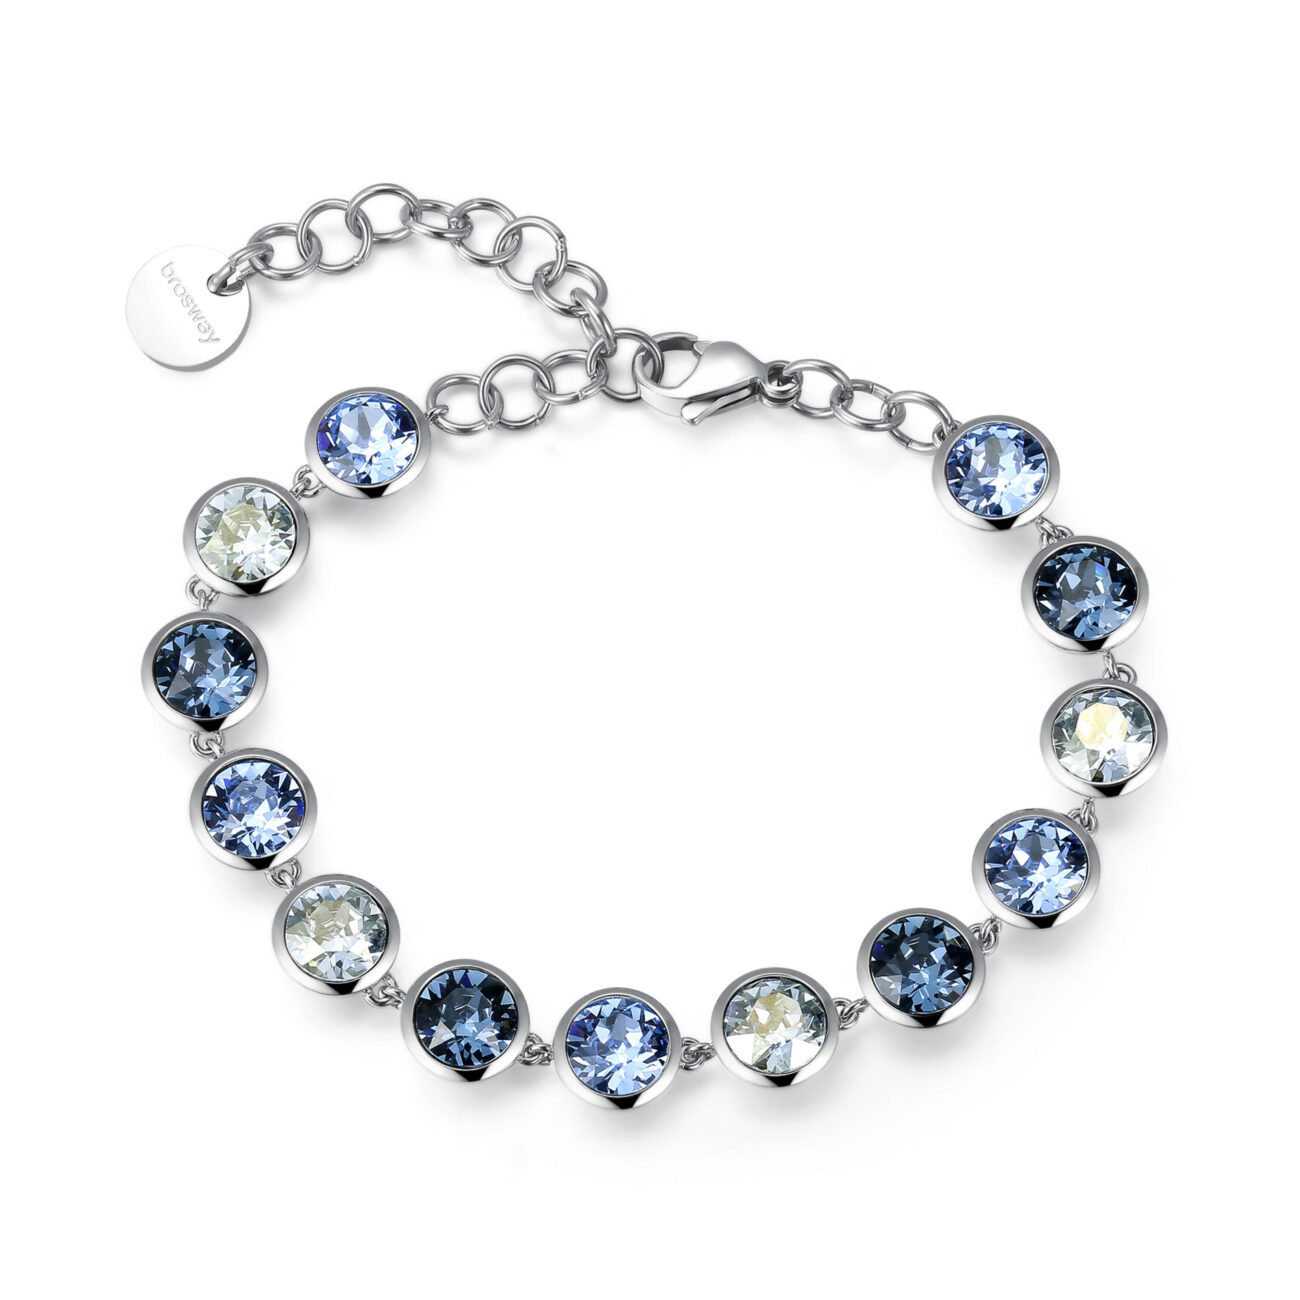 316L stainless steel bracelet with light sapphire, denim blue and crystal blue shade crystals.